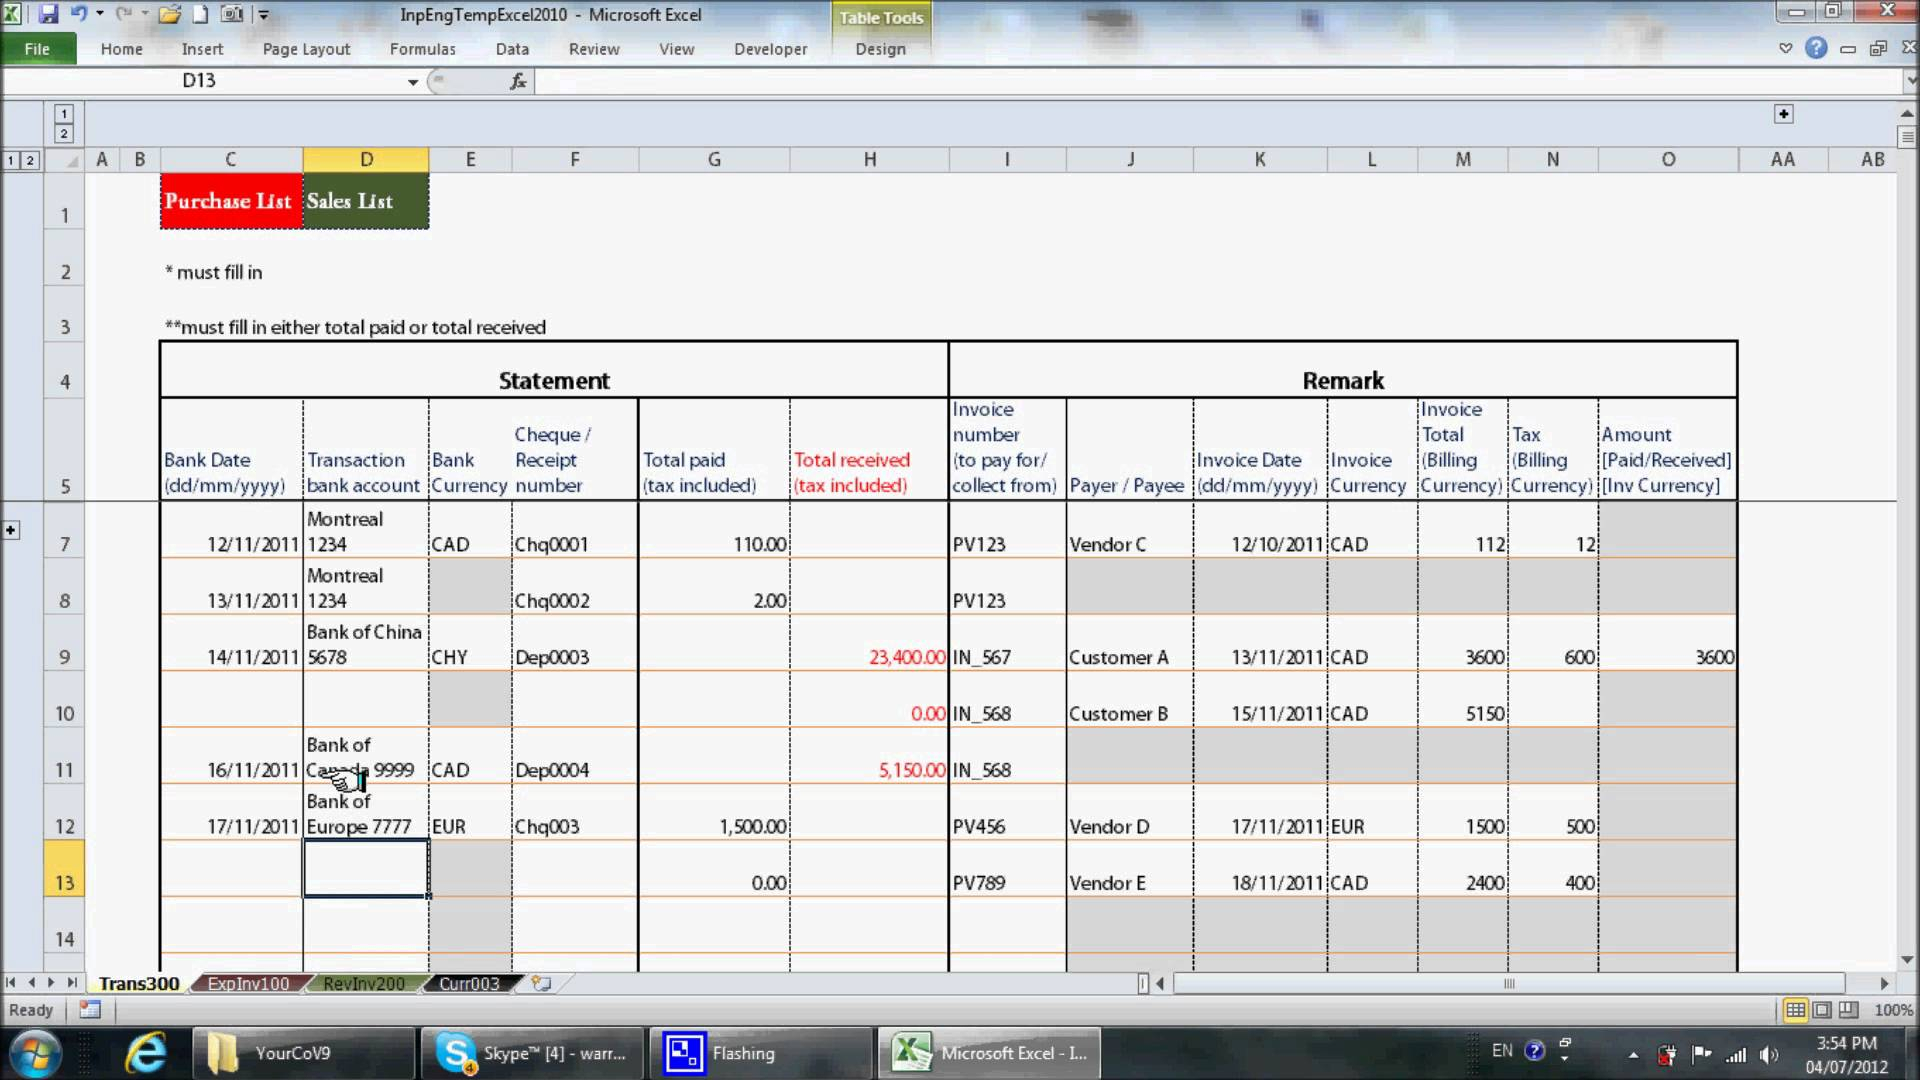 Excel Spreadsheet For Small Business Accounting | Papillon Northwan Intended For Basic Accounting Excel Spreadsheet